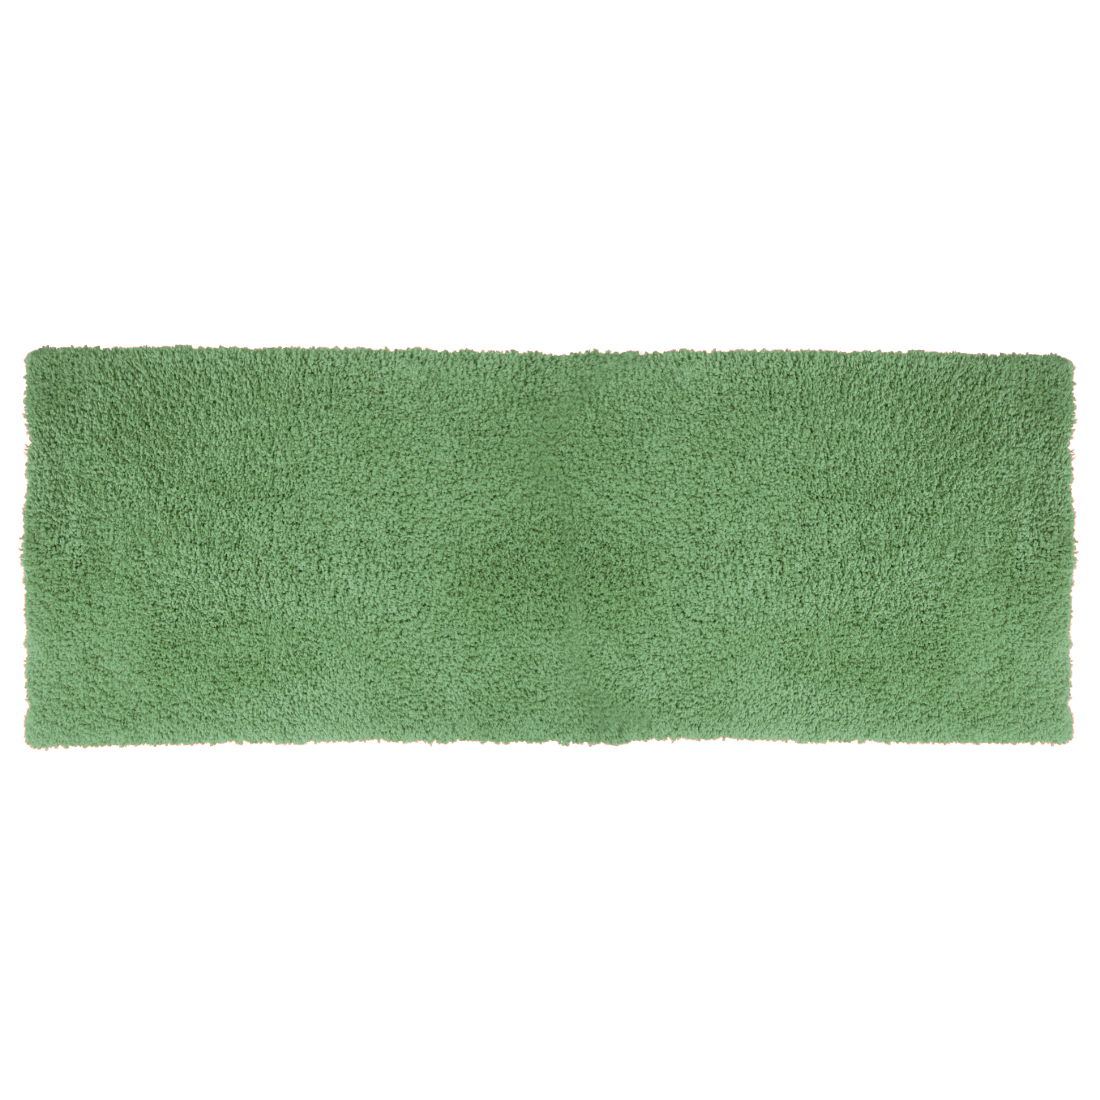 Nora Chenille Bath Mats in Olive Colour by Living Essence